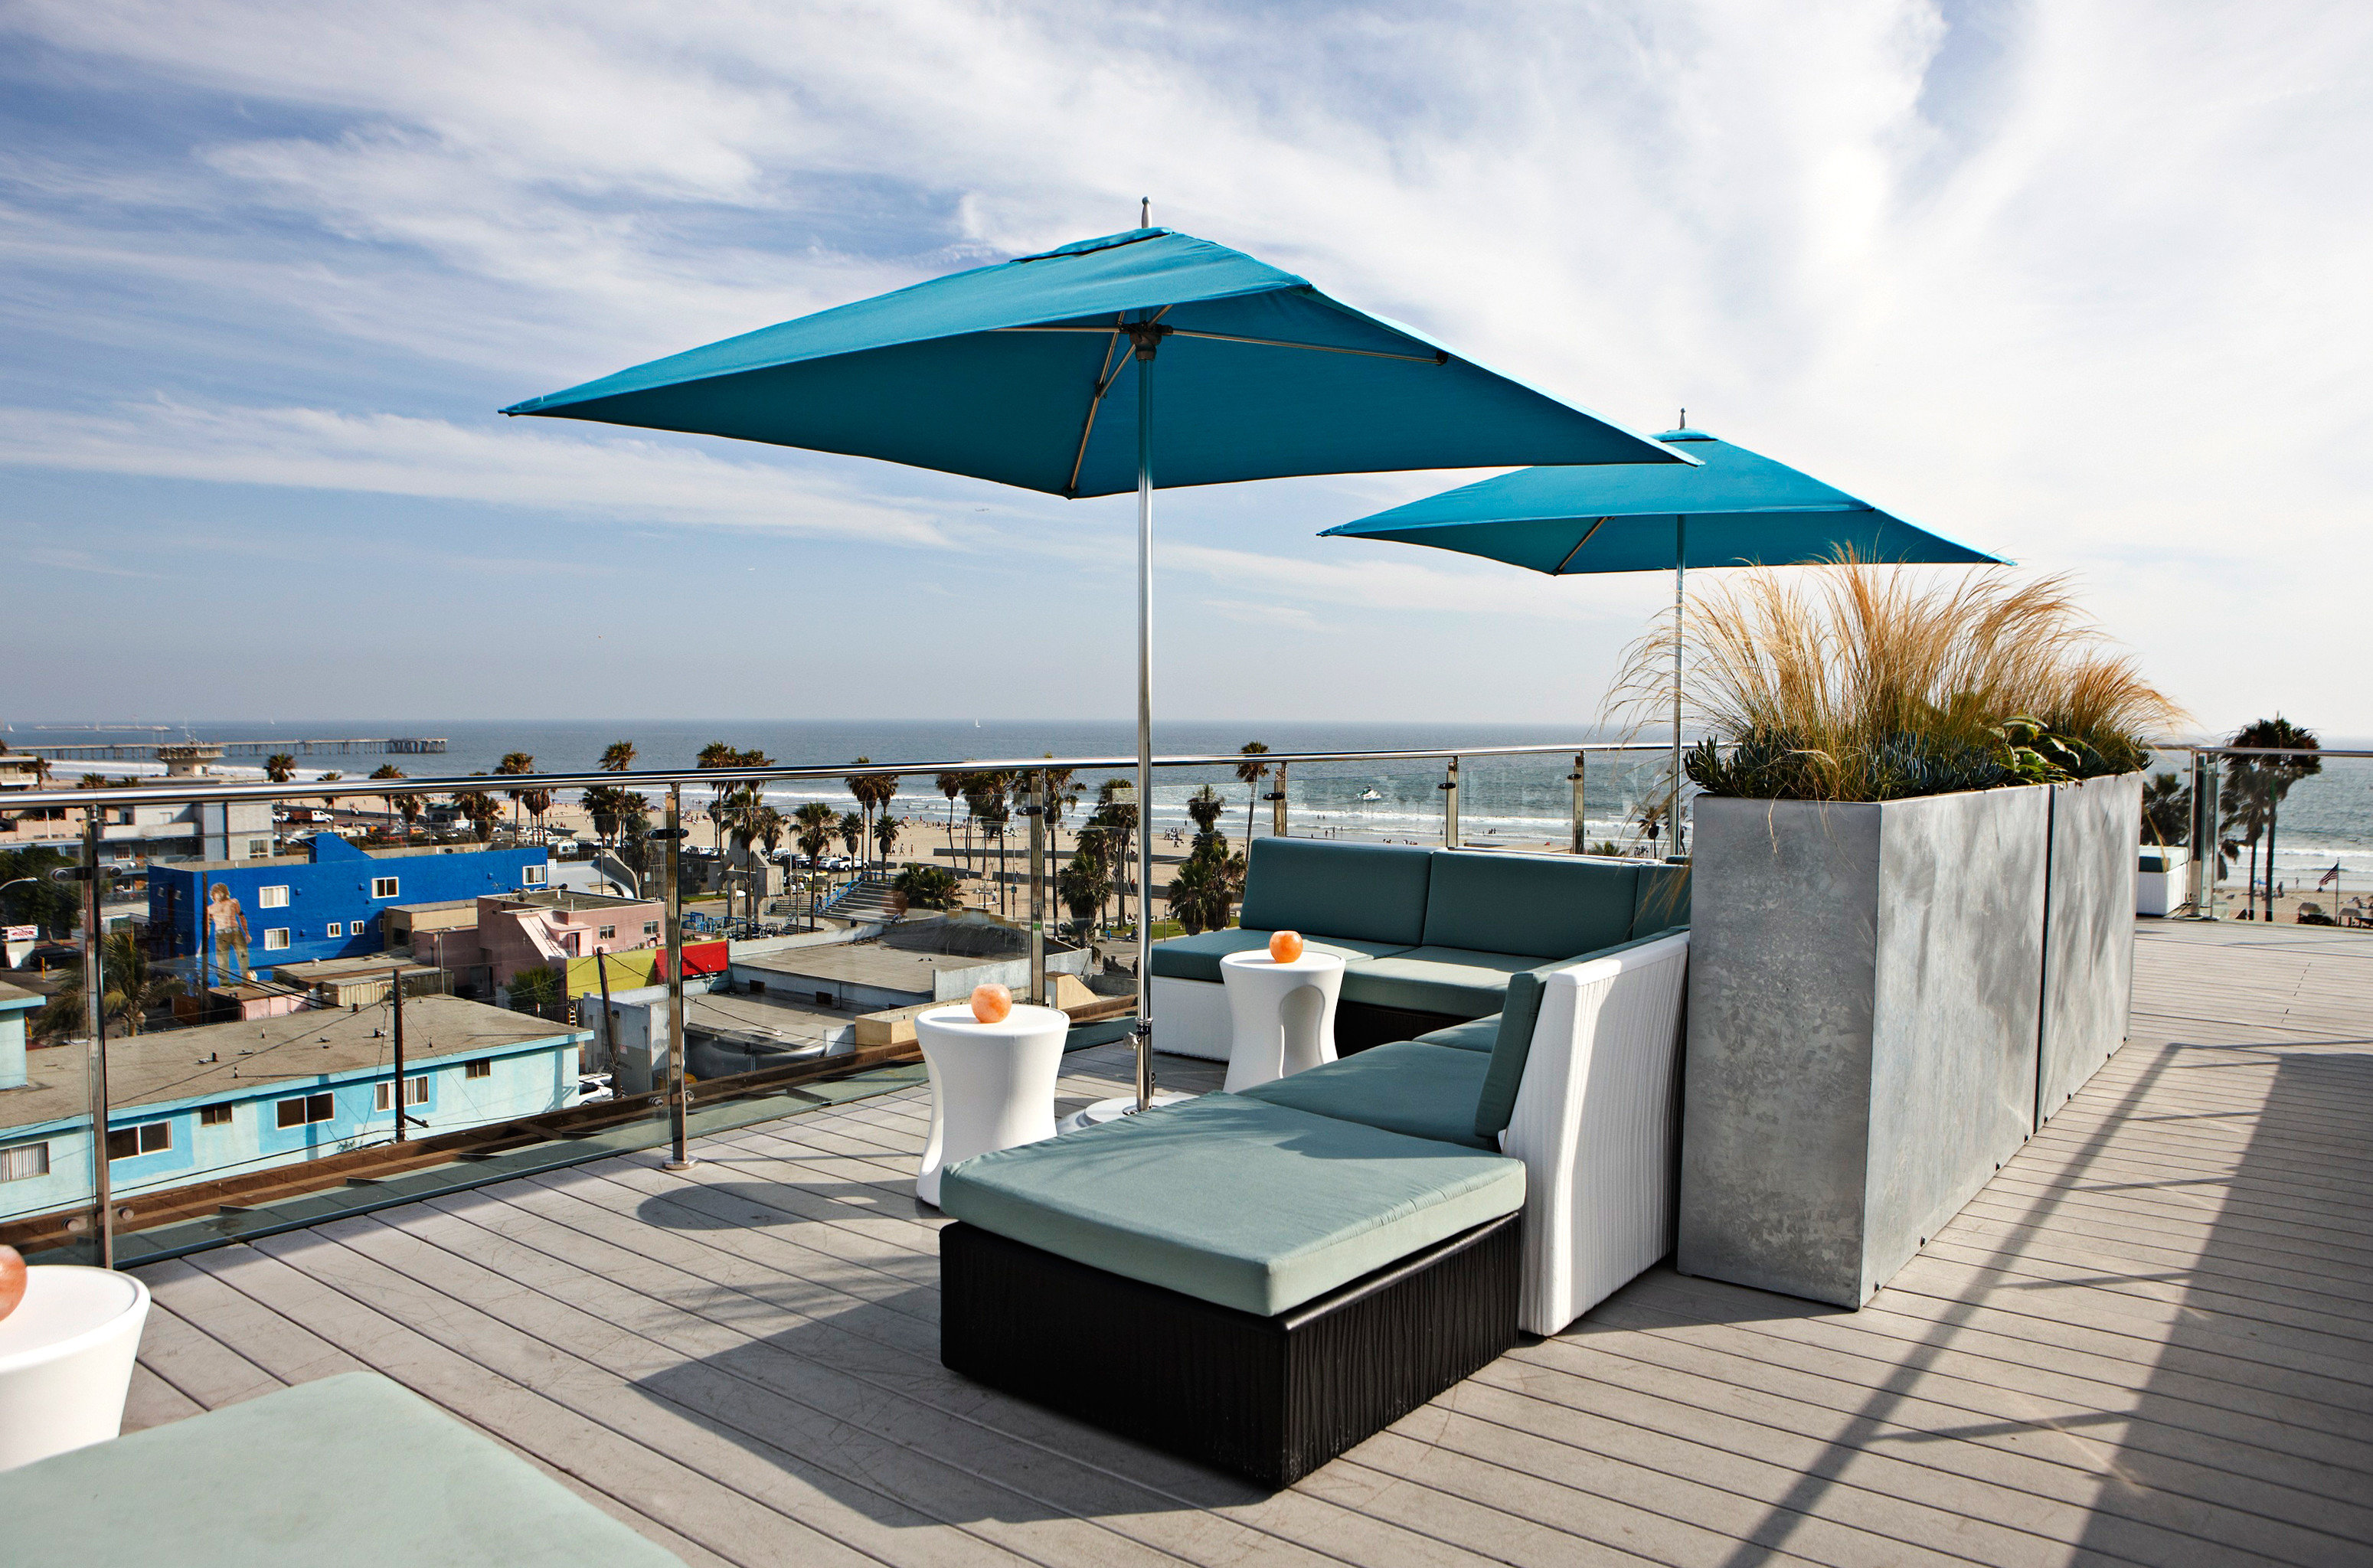 Beach Beachfront Deck Hip Hotels Living Lounge Modern Patio Terrace sky outdoor leisure tent canopy dock Resort vehicle swimming pool Villa marina outdoor structure accessory day